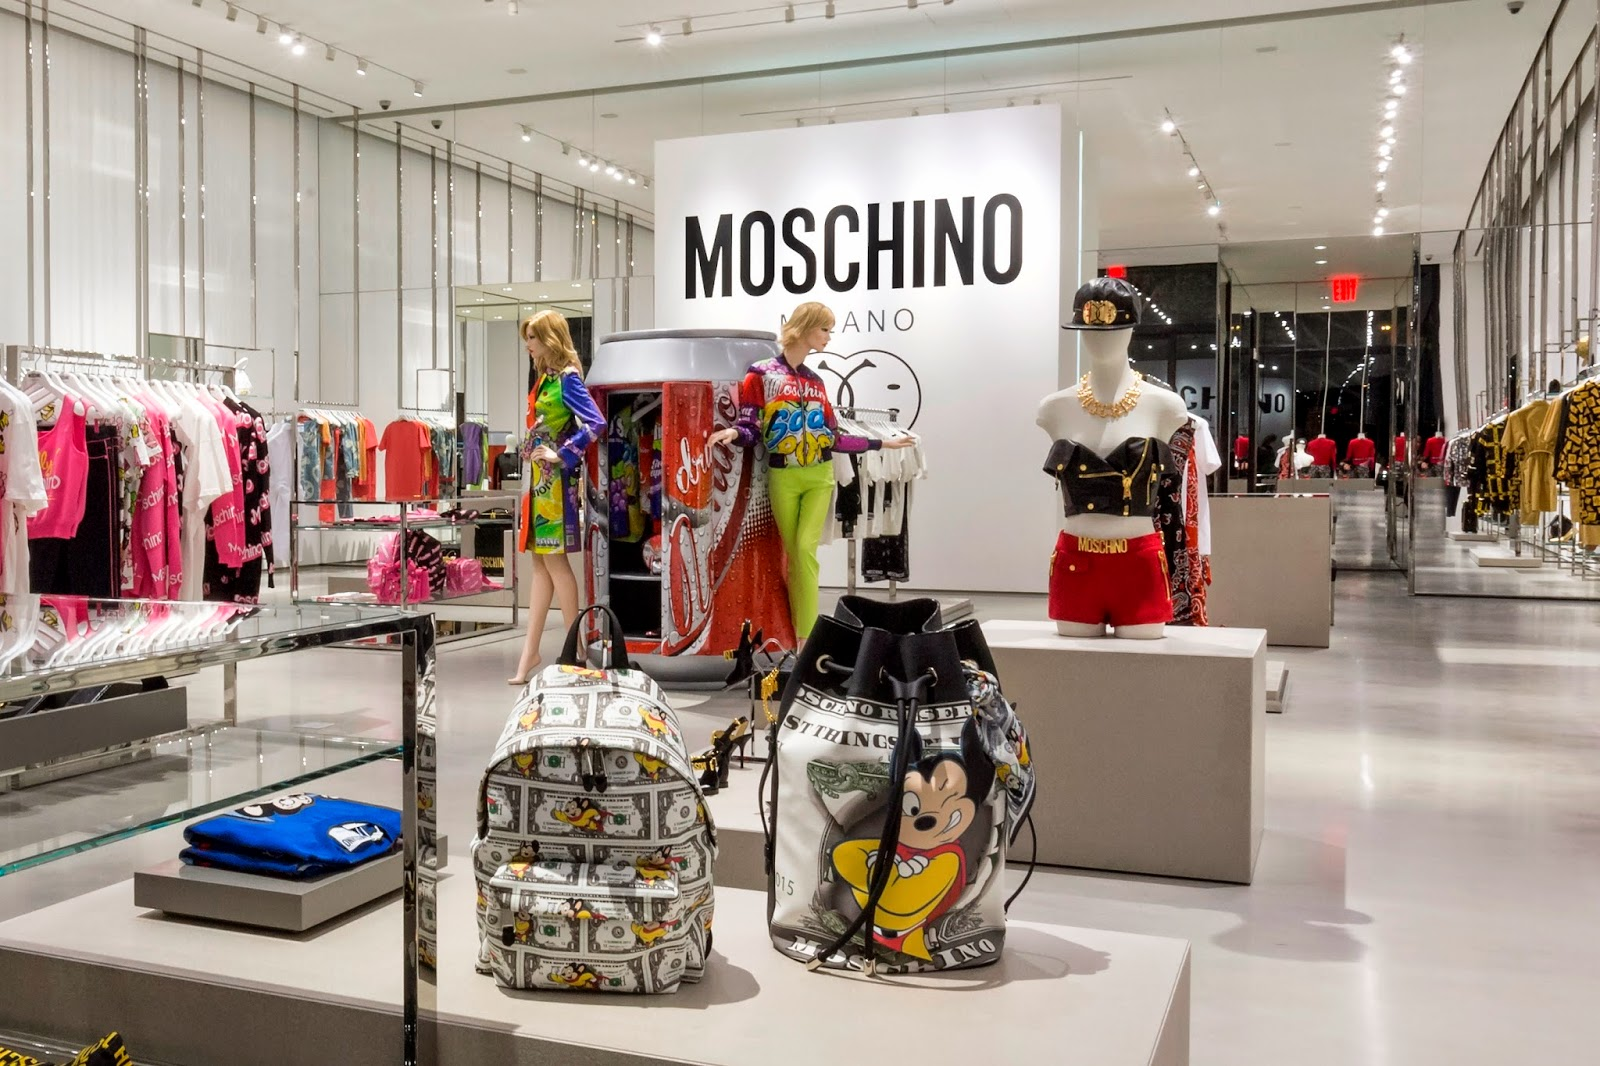 Moschino West Hollywood Bags and Clothing